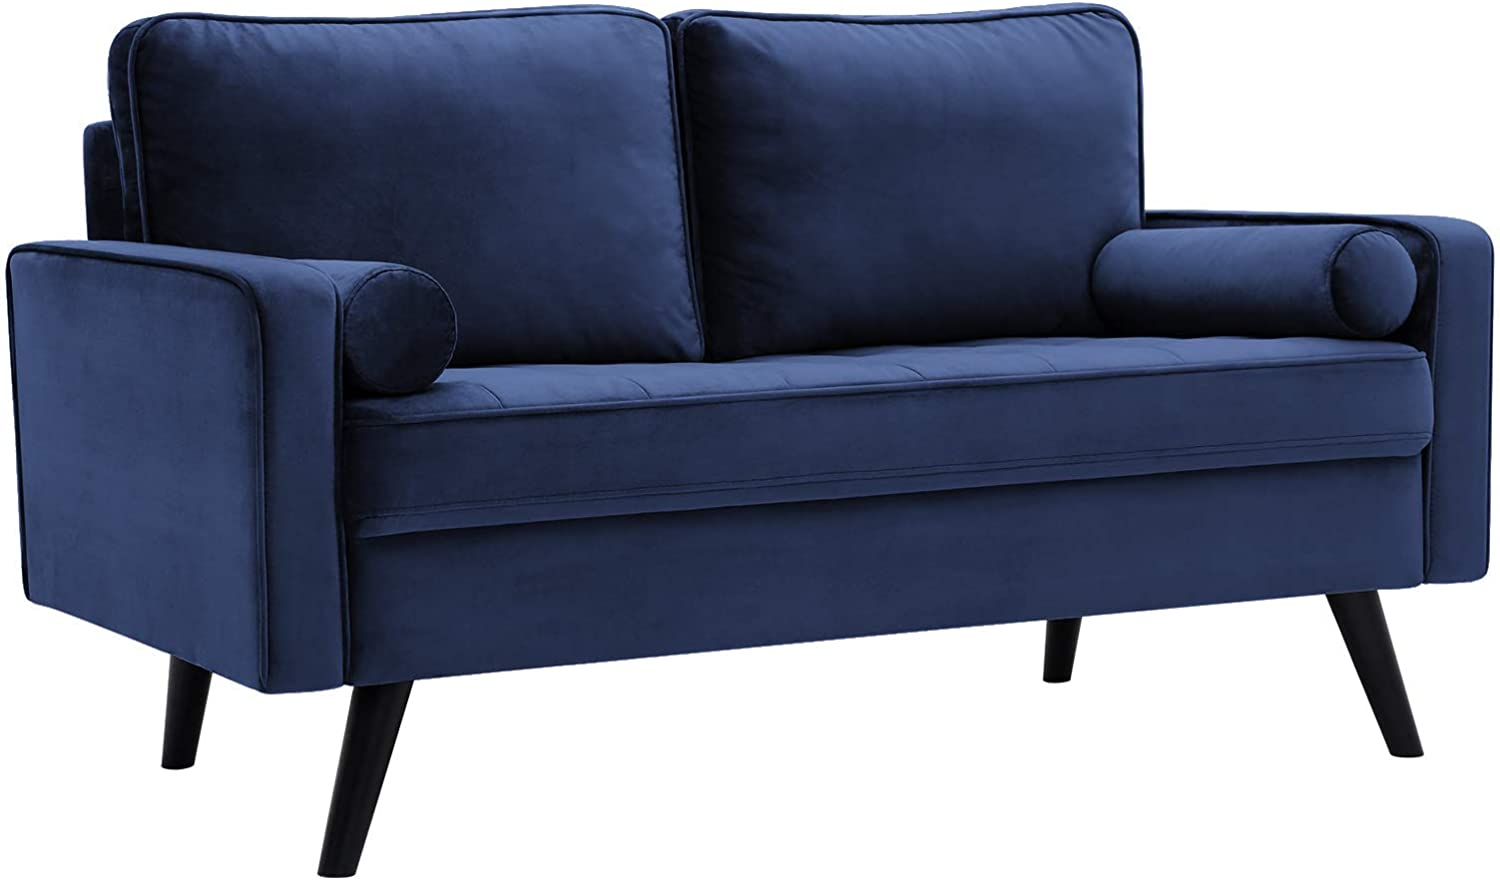 VASAGLE Sofa, Couch for Living Room, Smooth Velvet Surface, for Apartment, 57.5 x 32.3 x 33.1 Inches, Blue